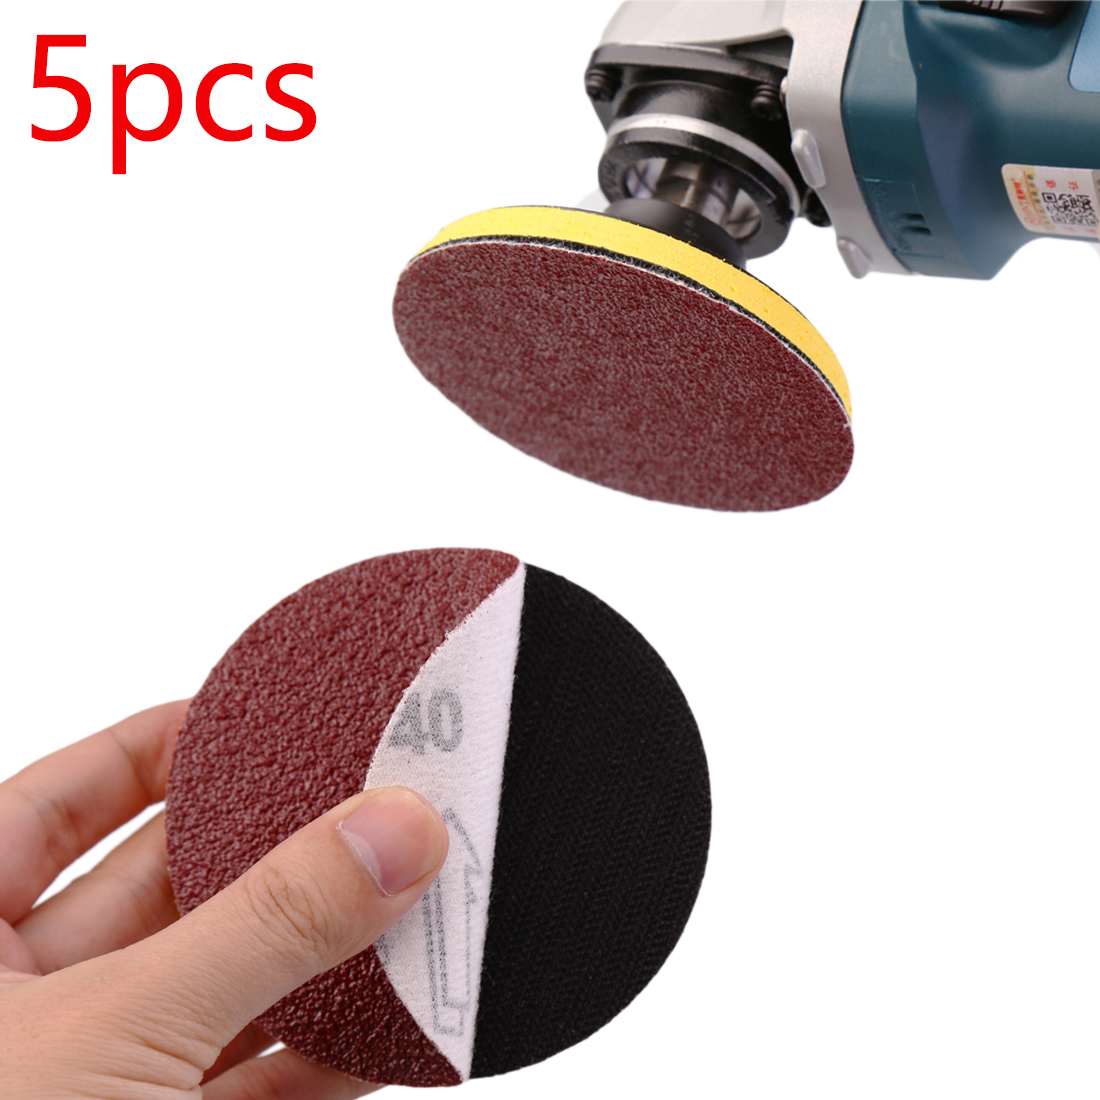 Abrasive Paper  5pcs 125mm Red Circular Flocking Polishing Disc Grits 80-1000 Dremel Tool Tool Accessories Felt Wheel Polishing